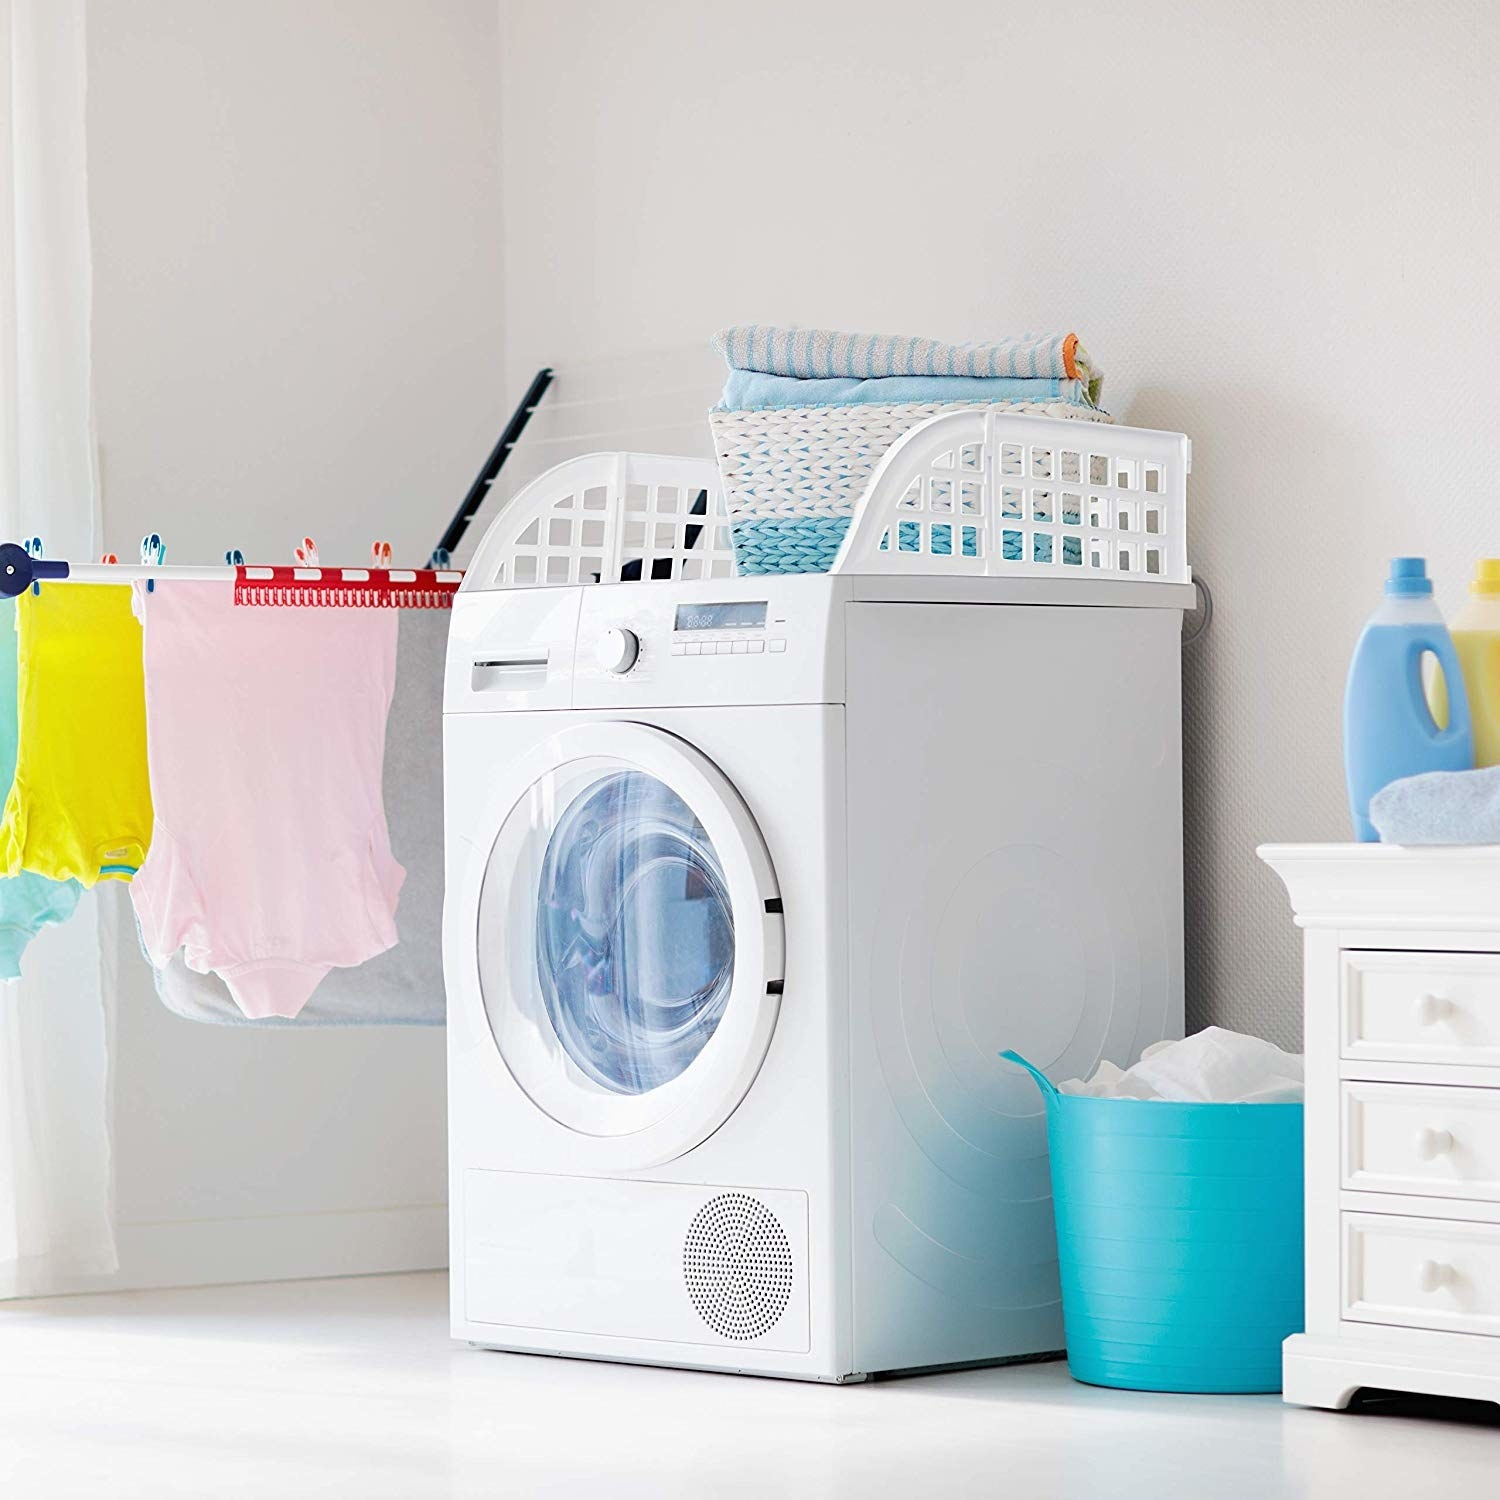 Washing machine with stack of clothes on top, protect from falling off the edge thanks to the magnetic plastic guards on the sides